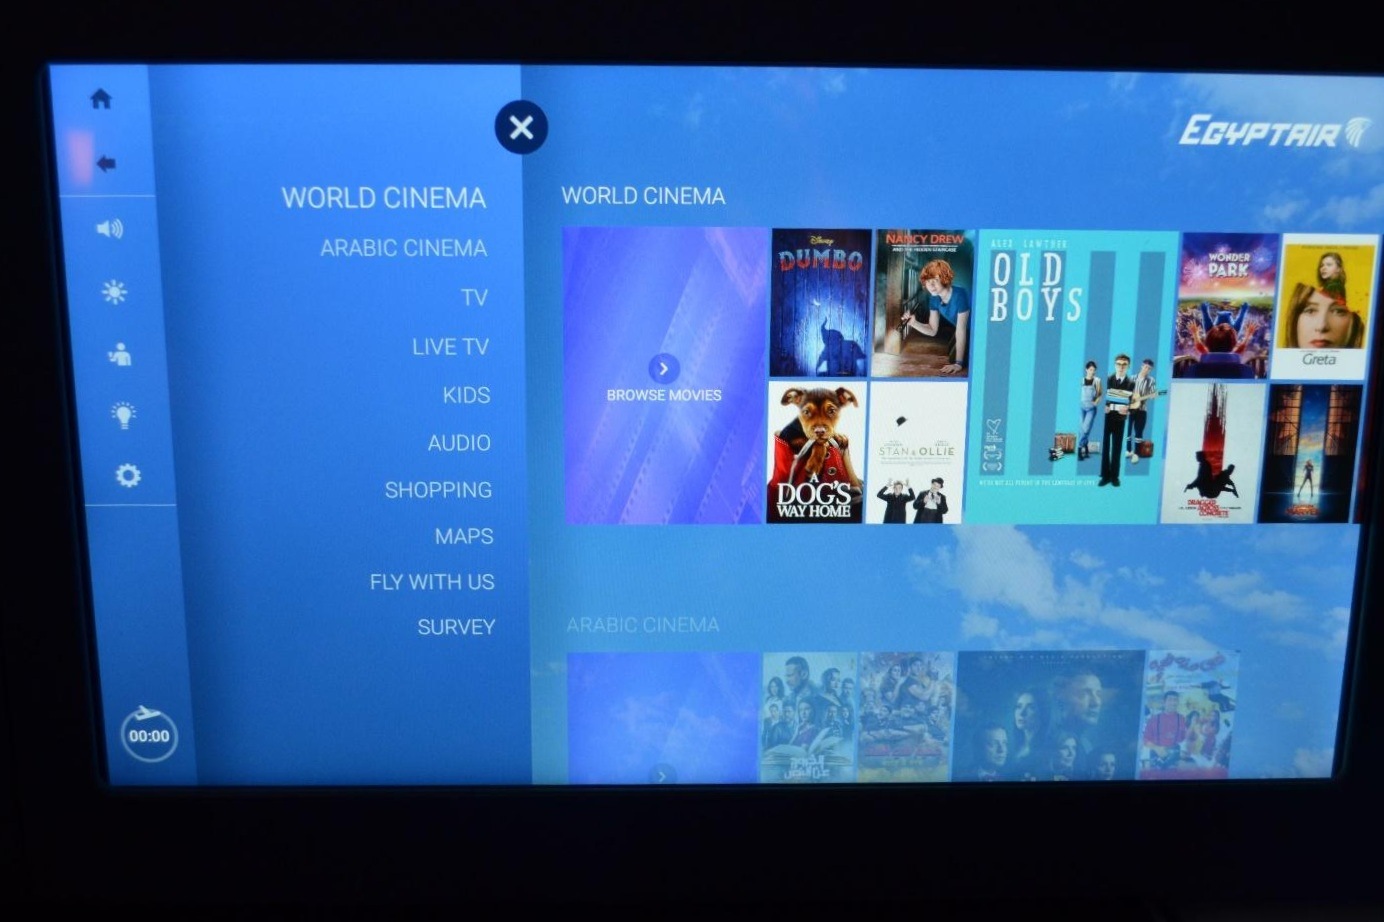 EgyptAir 787 business class – Movie selection